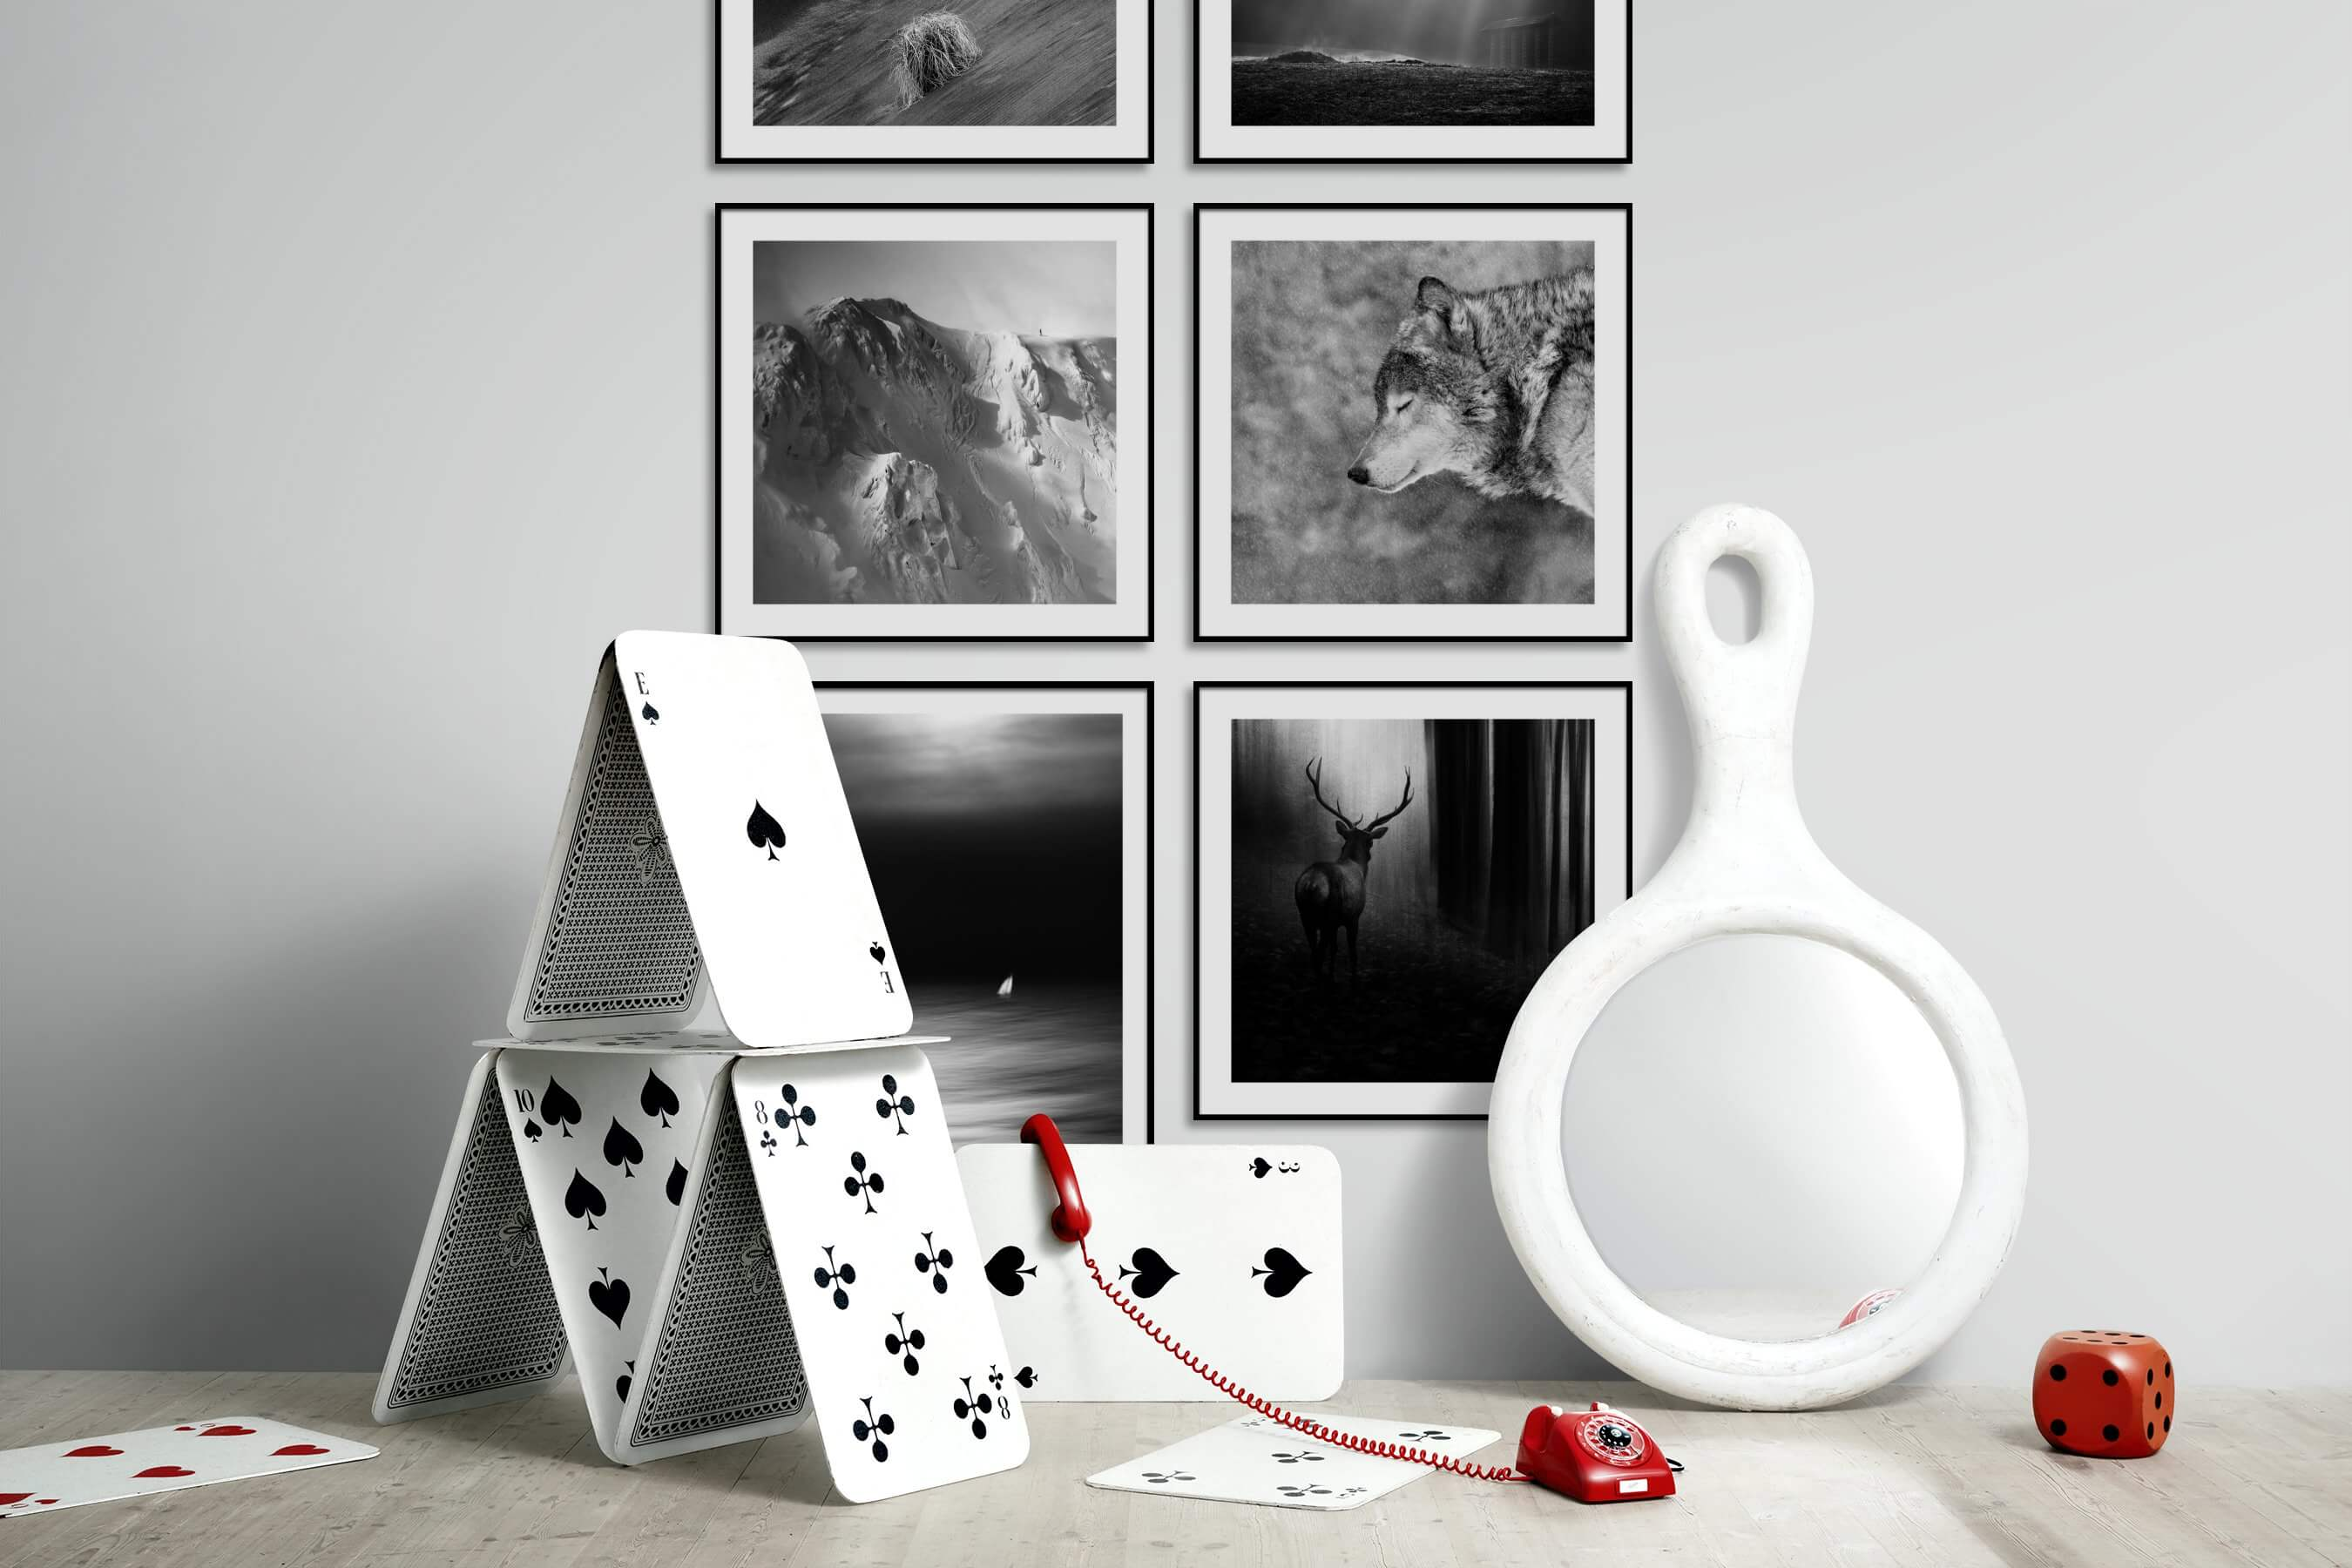 Gallery wall idea with six framed pictures arranged on a wall depicting Black & White, For the Minimalist, Nature, For the Moderate, Animals, and Beach & Water